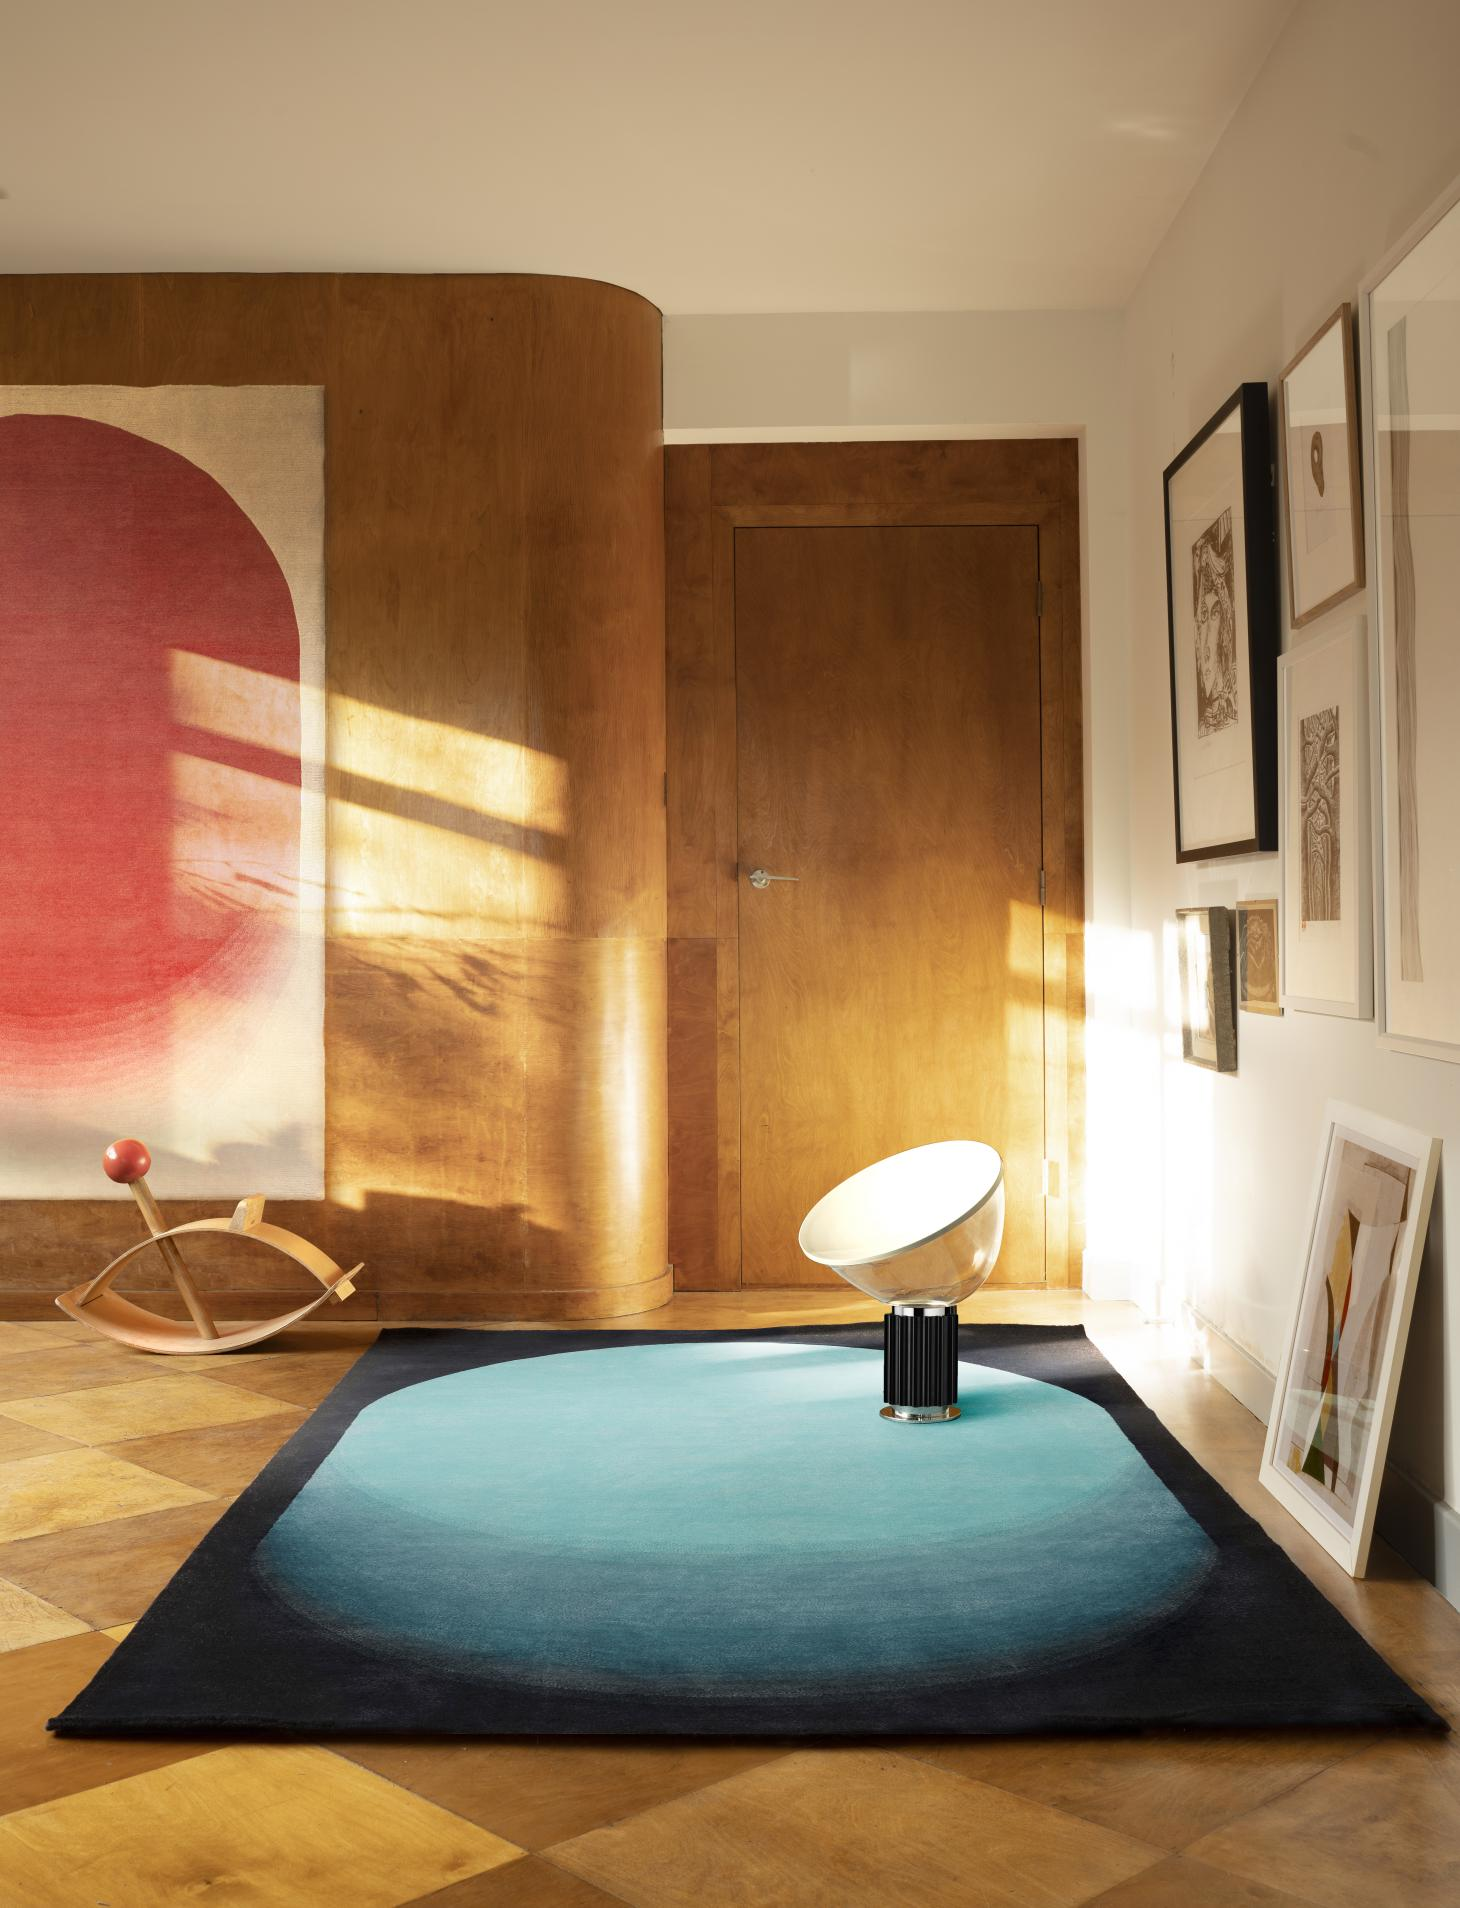 A rug with a blue oval on black background placed on the parquet floor of a room featuring wooden walls with a further rug in white and red hanging vertically